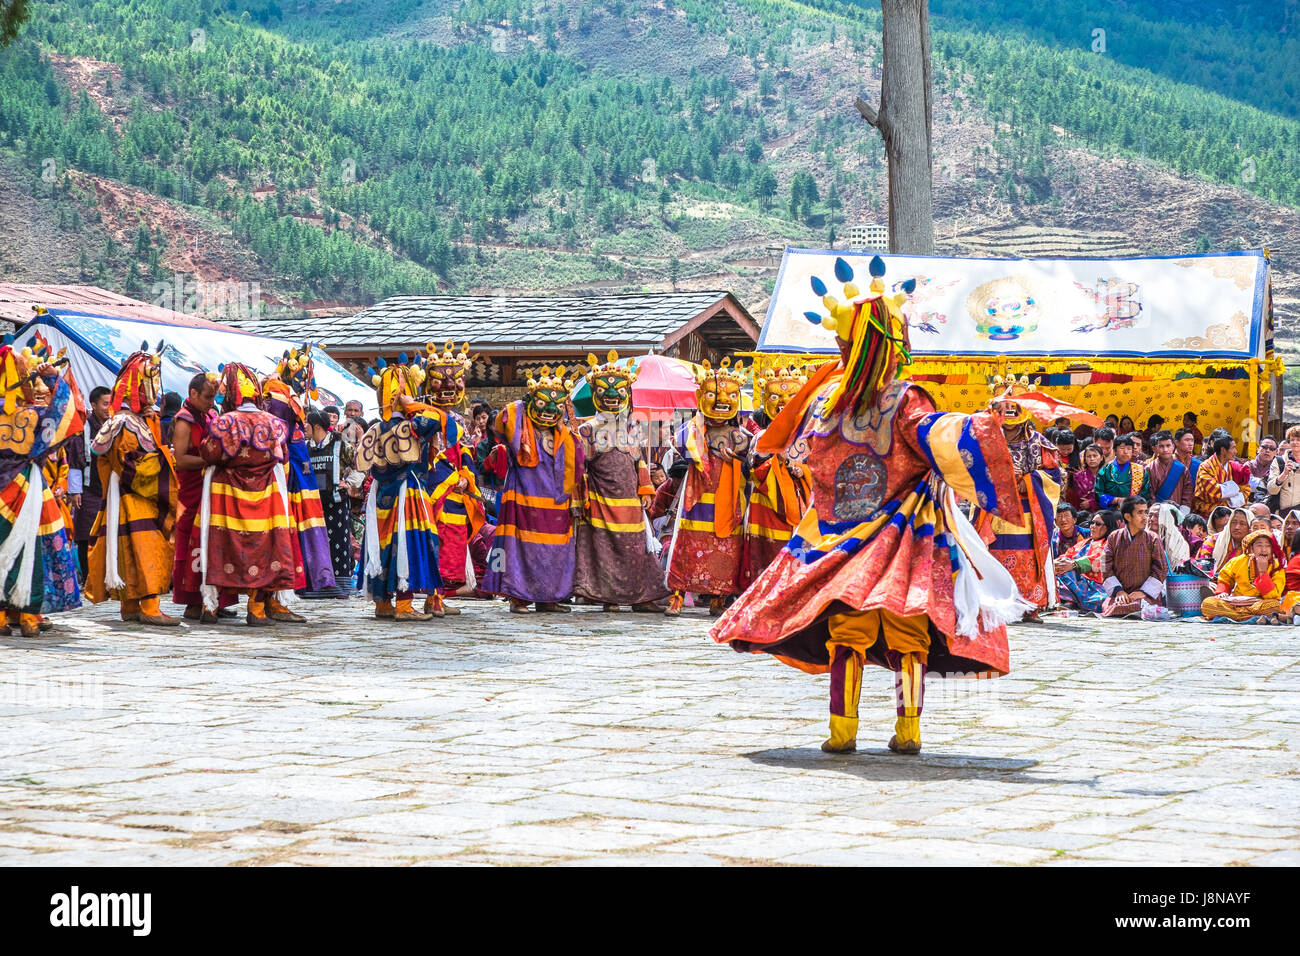 This ancient ritual mask dance also known as Cham is performed at religious festivals known as tsechu in Bhutan - Stock Image